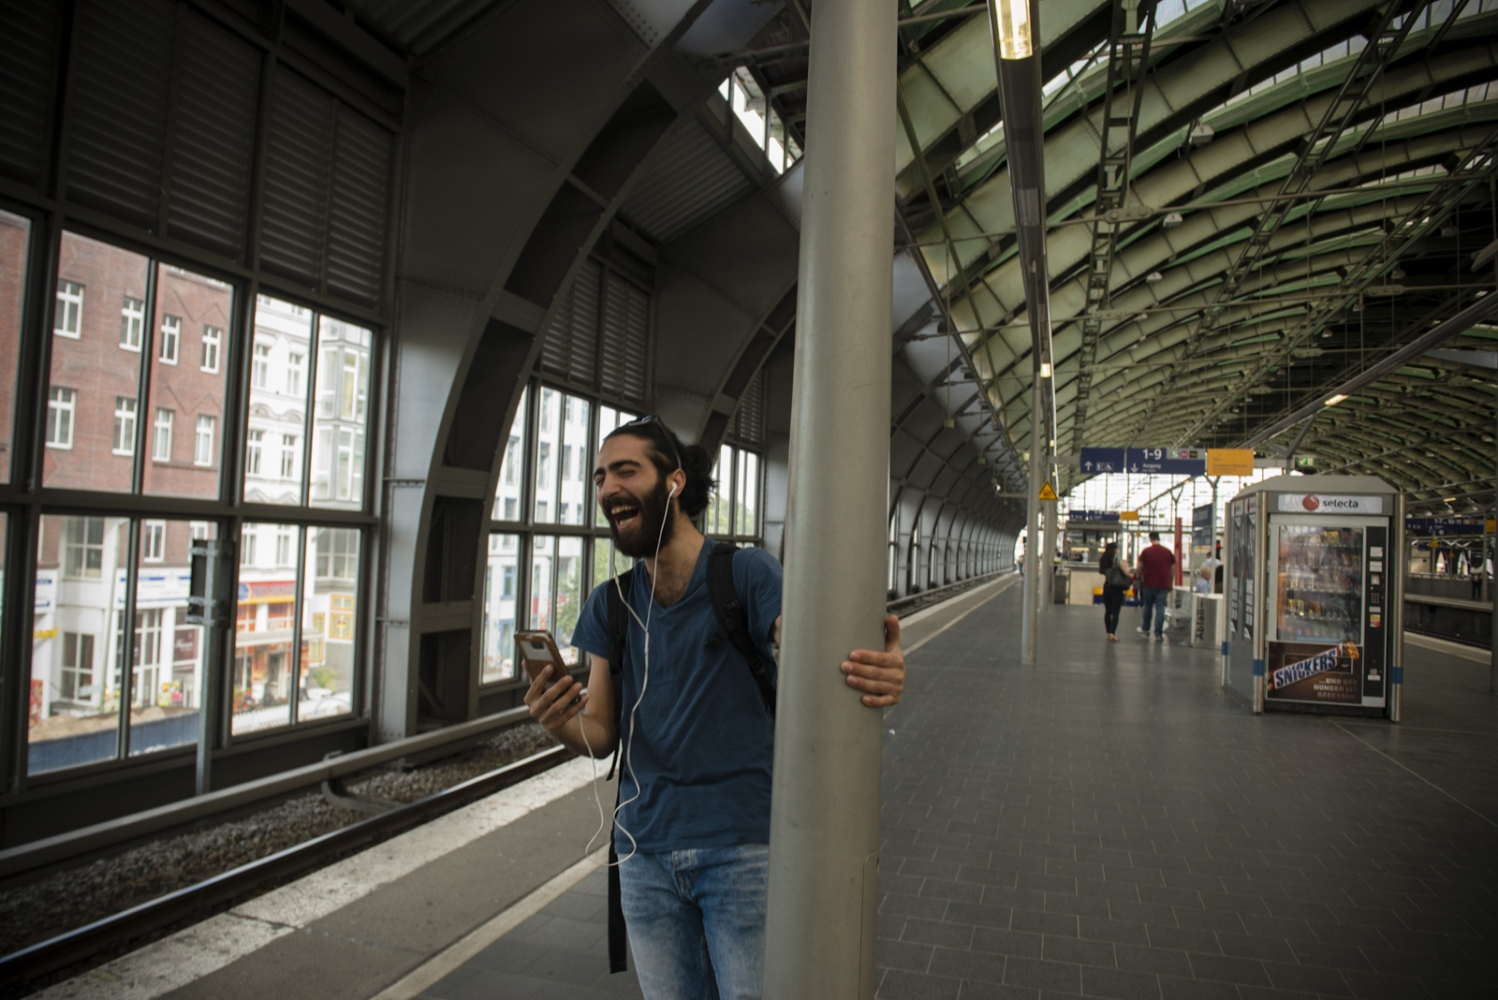 BERLIN  | GERMANY | 2016-06-10  | Fadi (22) video chat with her fiancé who is still back in Syria while waiting for the train to arrive. Many refugees had no choice but leaving their loved ones behind and be the first to arrive in europe, in hope finding jobs and being able to support their families back in Syria.